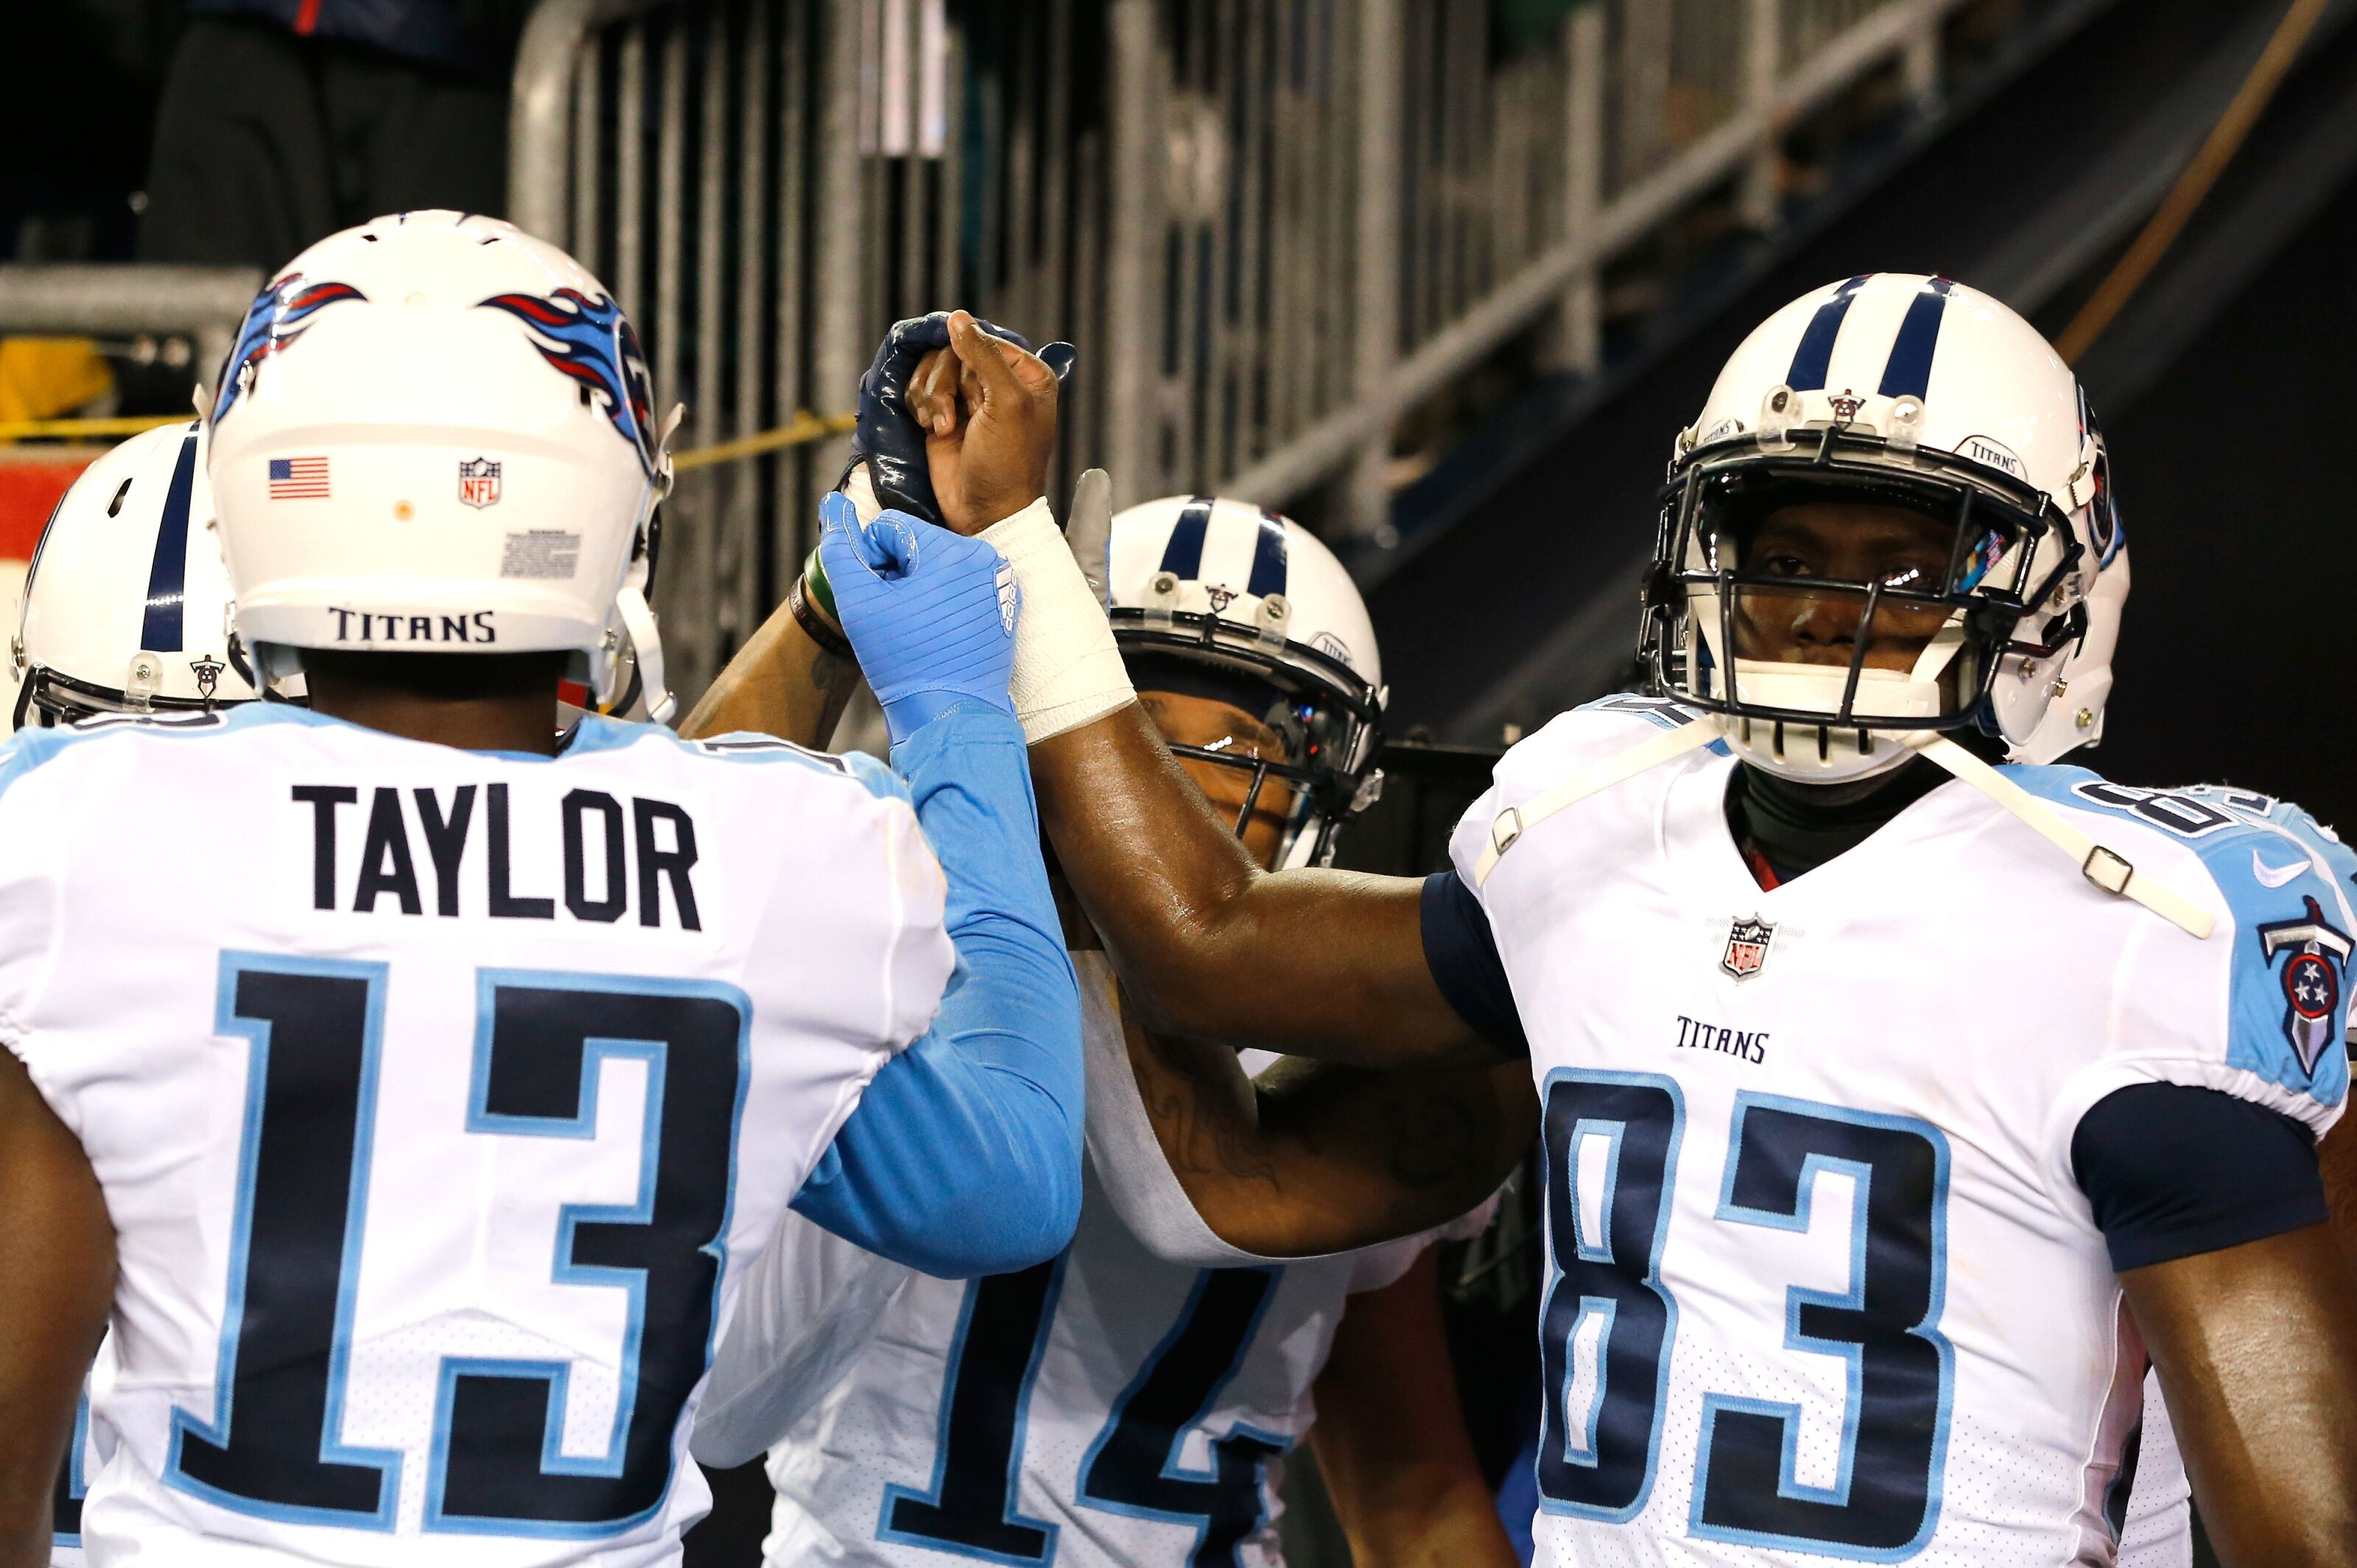 904626658-divisional-round-tennessee-titans-v-new-england-patriots.jpg